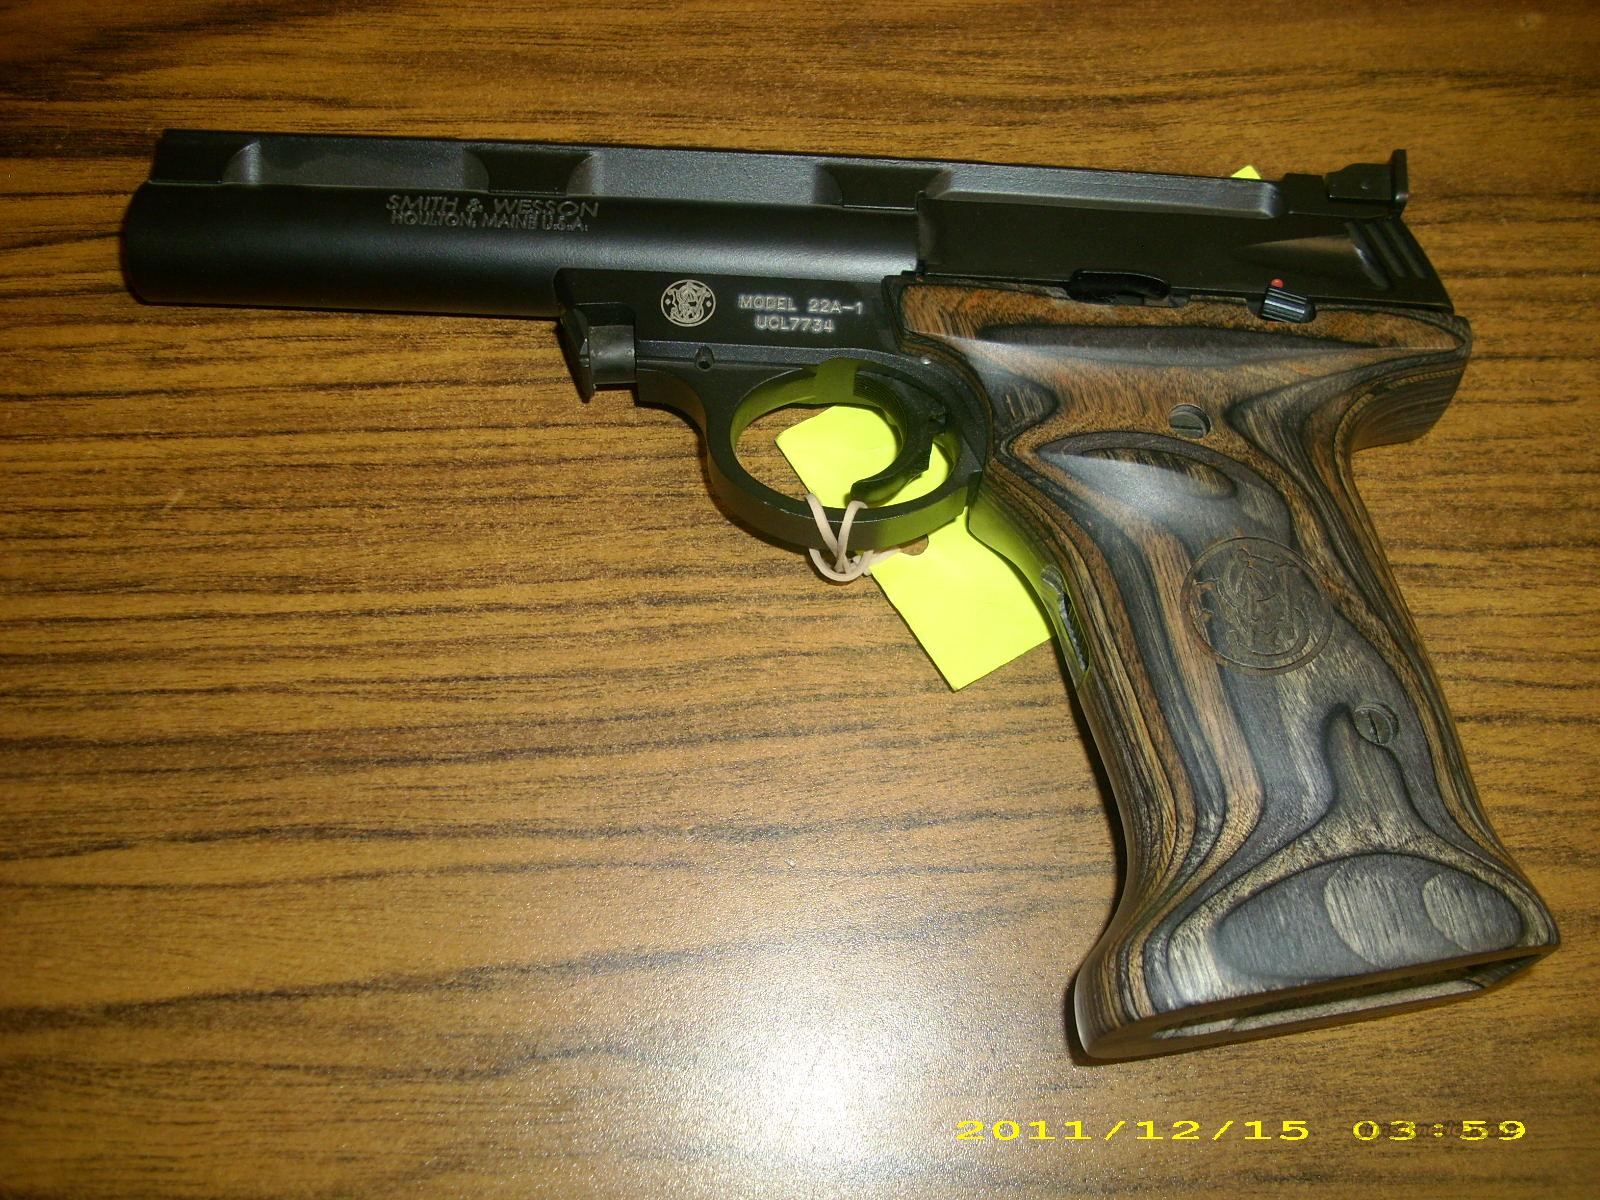 Smith and Wesson 22 A w/ Wood Grips   Guns > Pistols > Smith & Wesson Pistols - Autos > .22 Autos